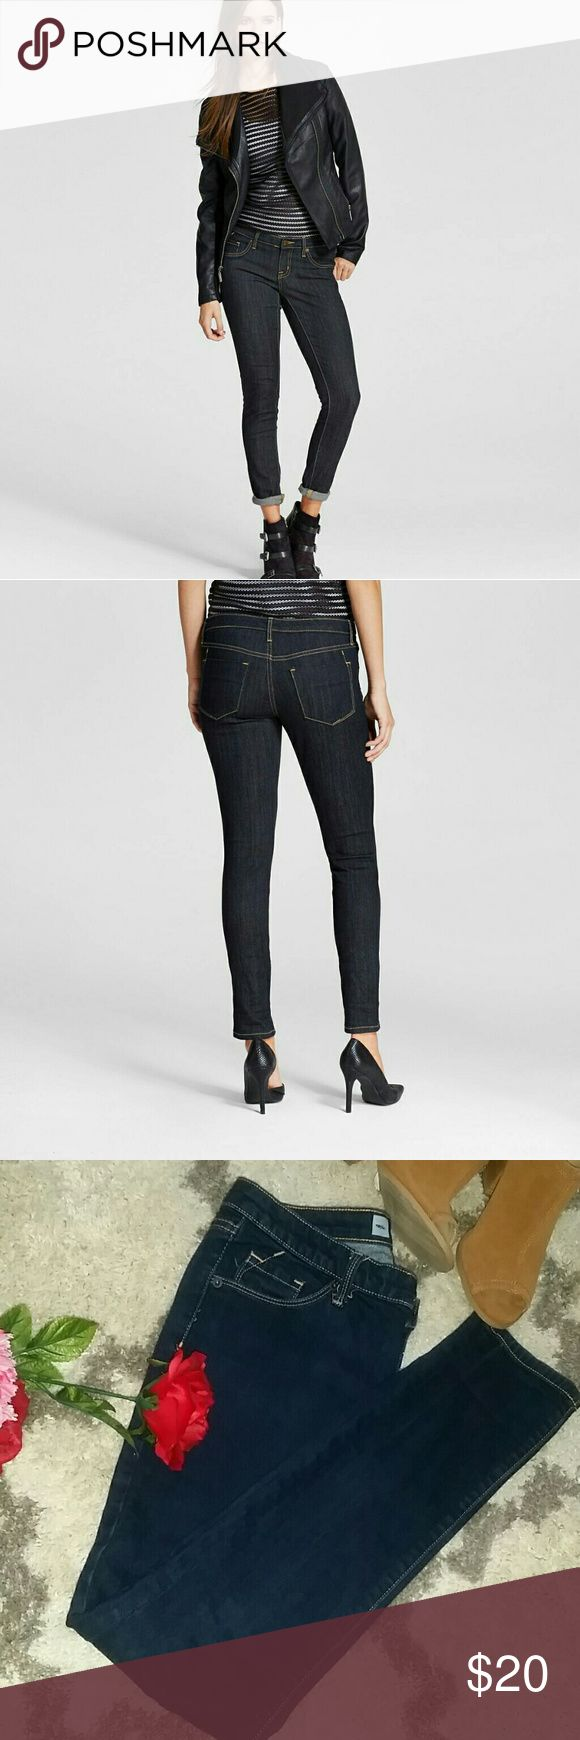 Dark wash blue jeans Size 6R/R Women's Mid-rise modern skinny Jeans (Modern Fit) - Mossimo Dark Wash Blue. Very good conditions. 99% cotton 1% Lyra spandex.  Size 6R/R Mossimo  Jeans Skinny